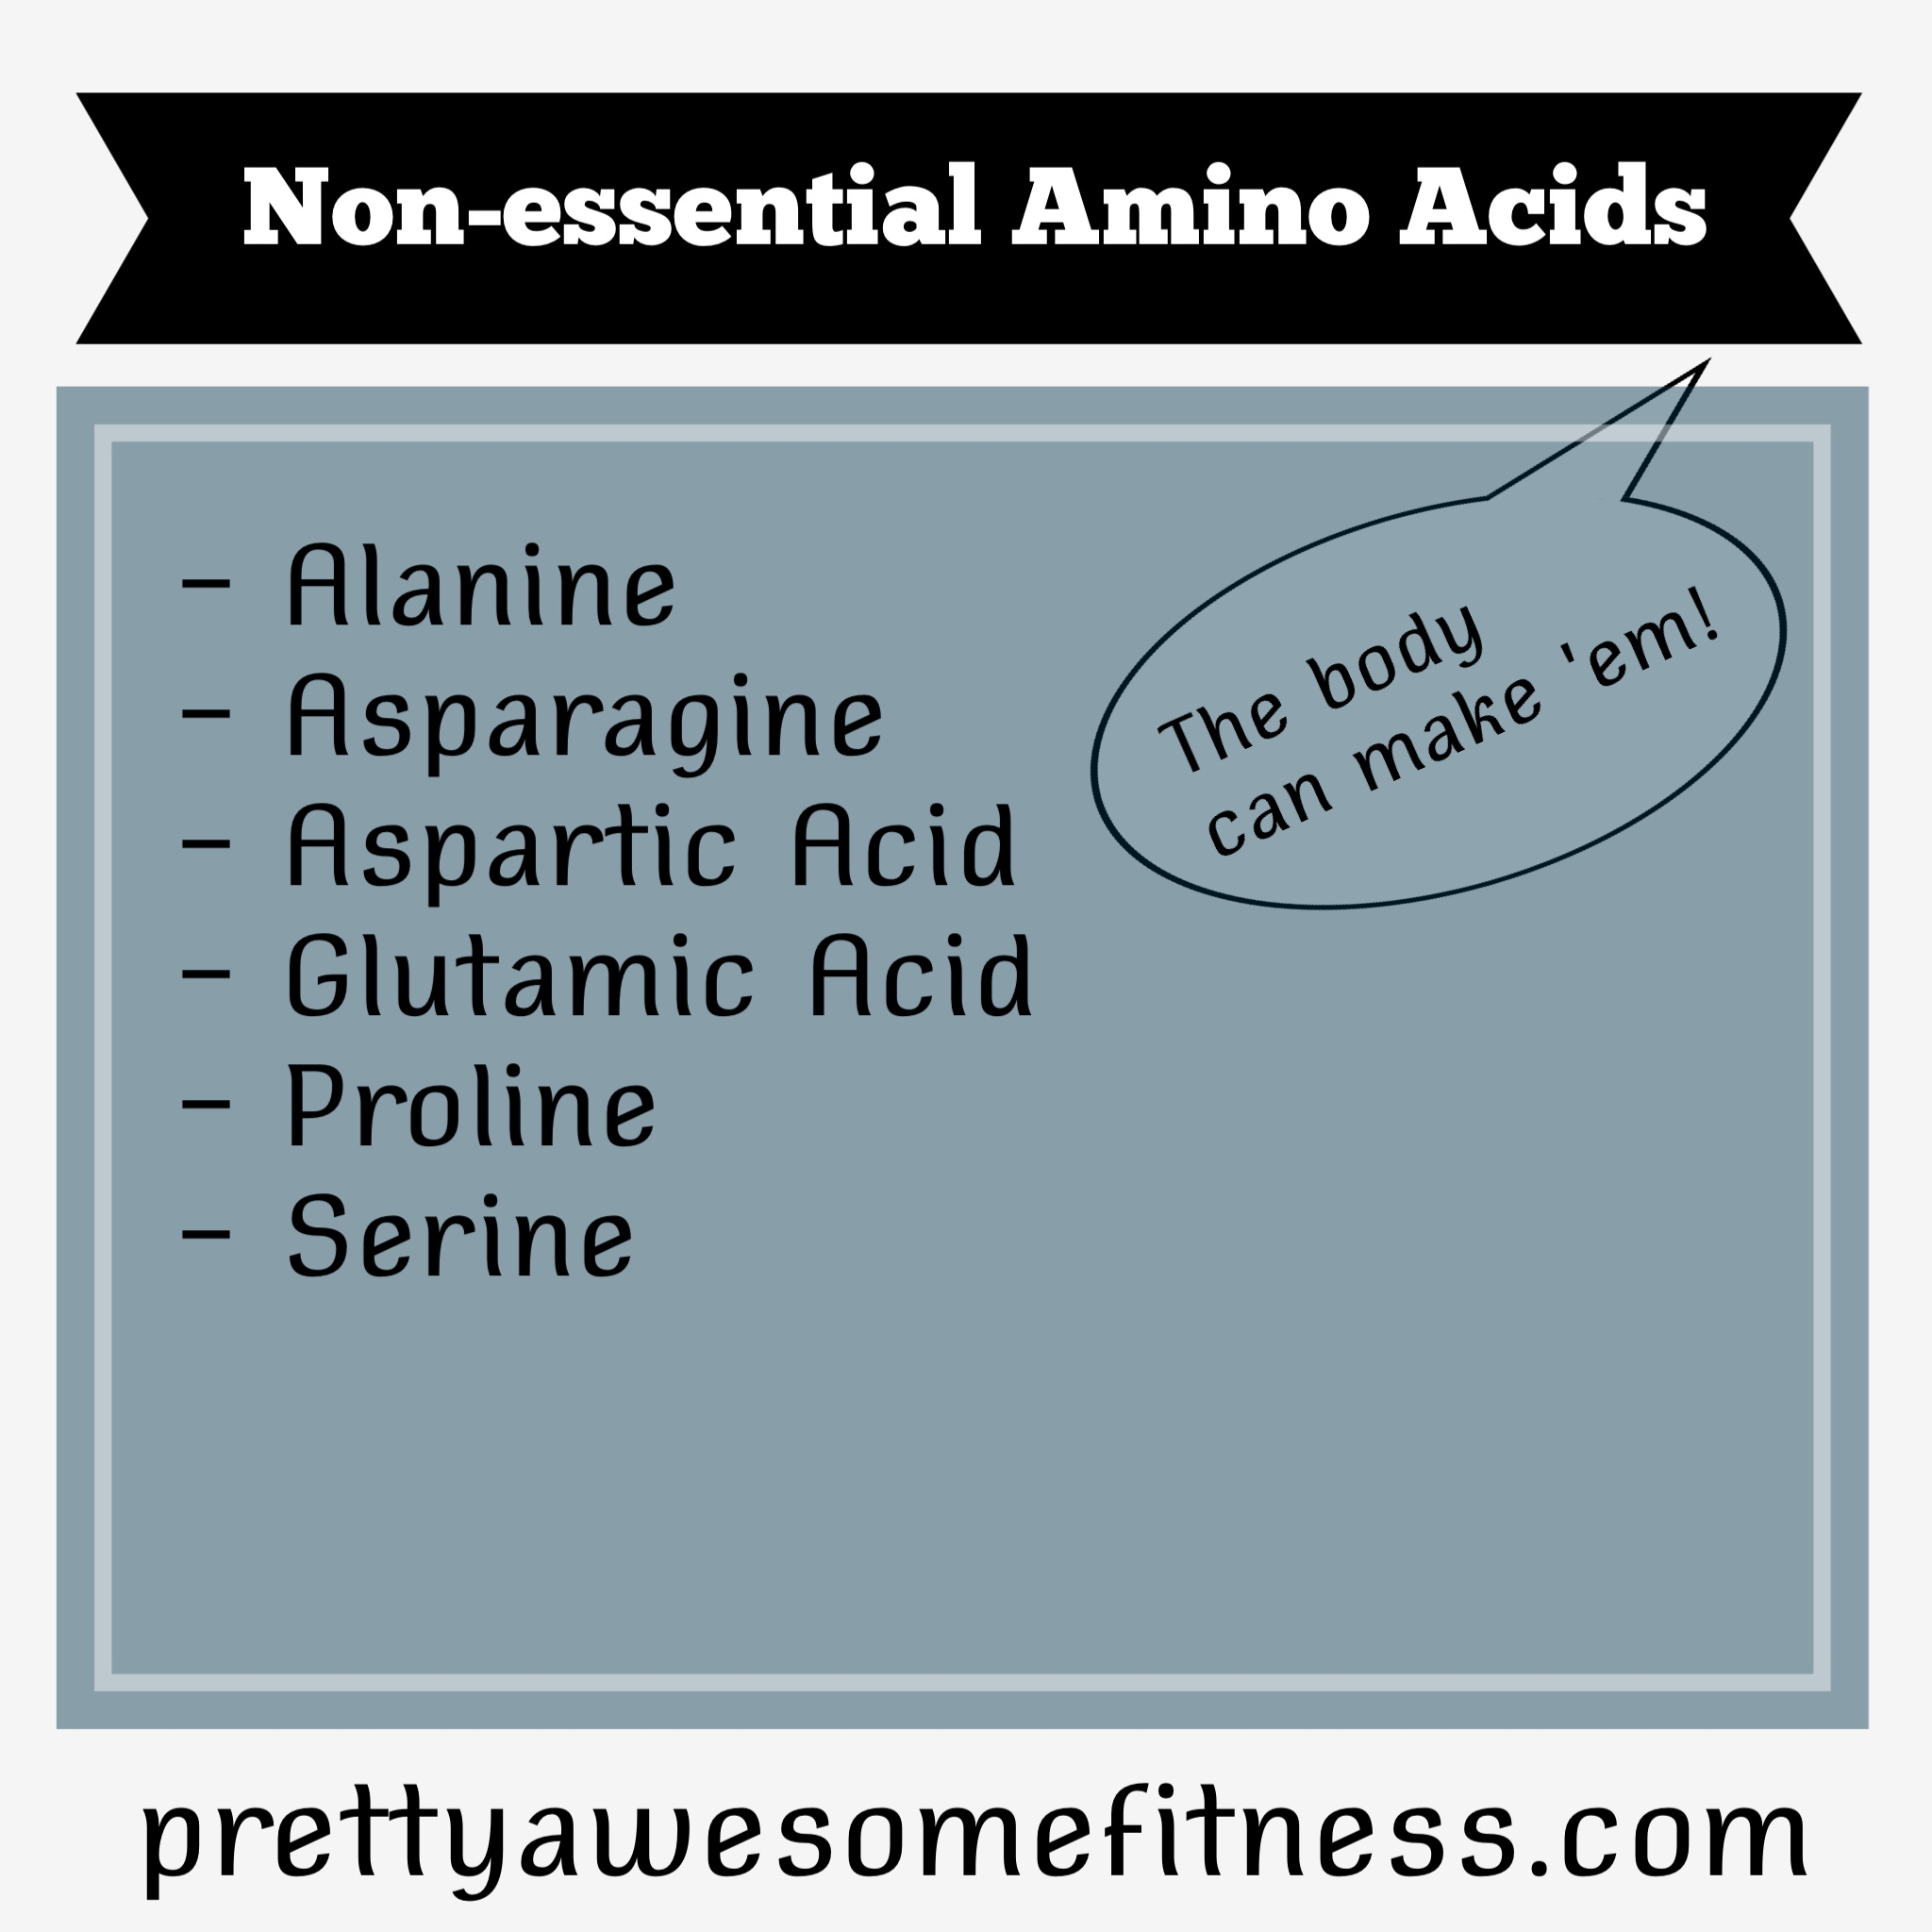 ... amino acids vs conditionally essential vs non-essential amino acids